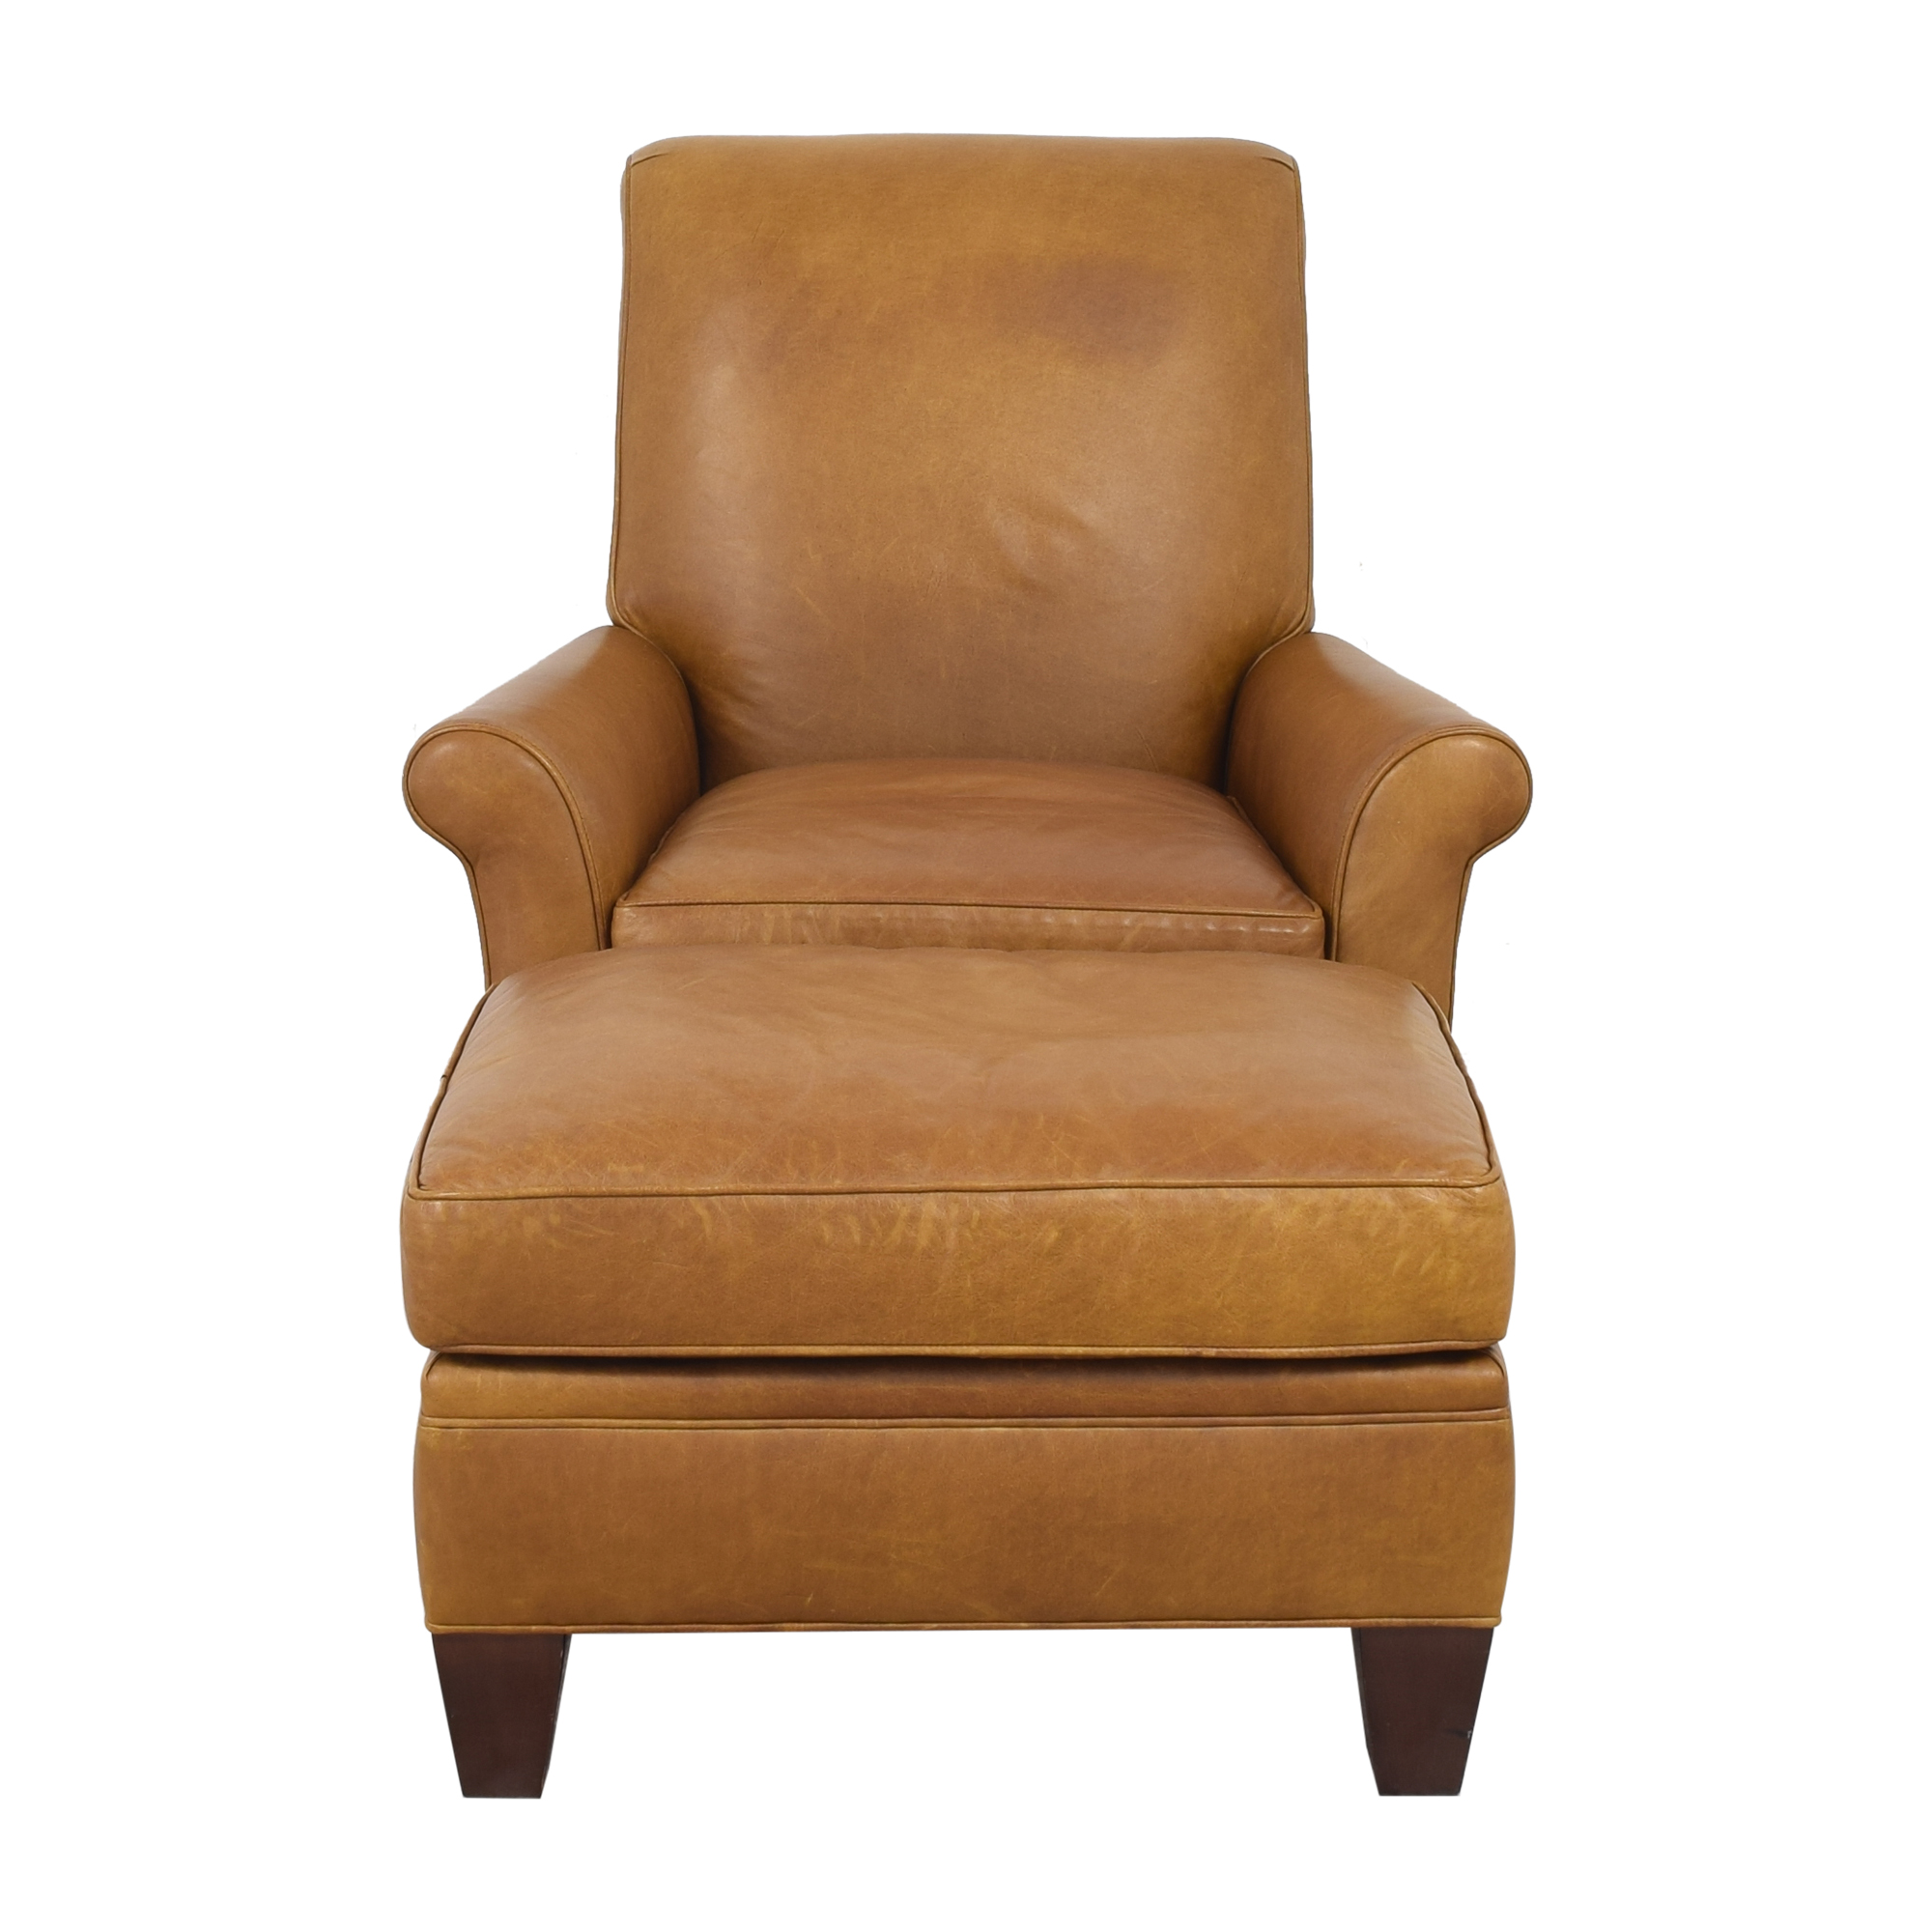 Jensen-Lewis Armchair with Ottoman / Accent Chairs